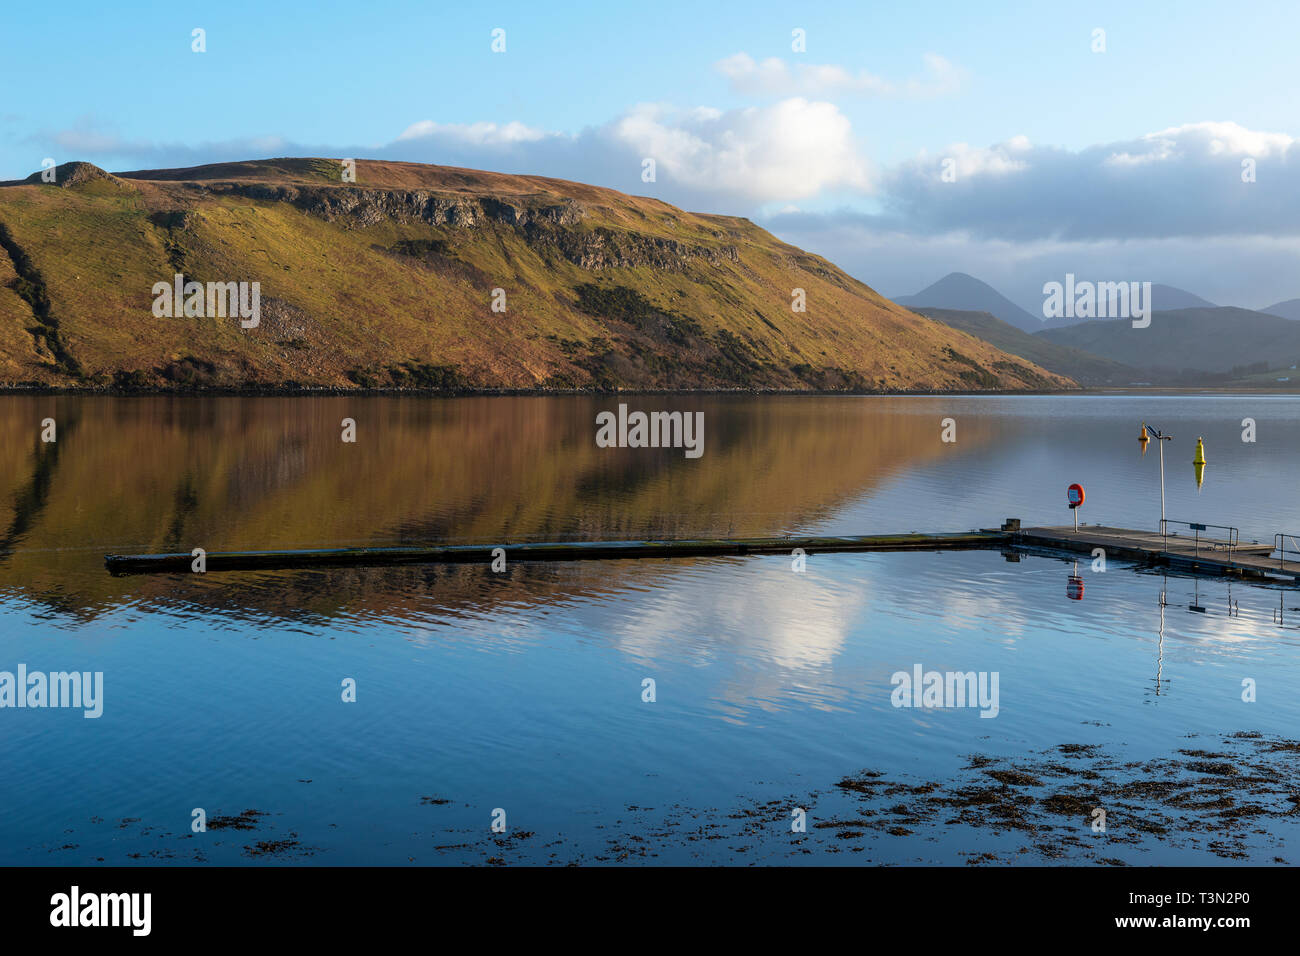 Empty pontoons at Carbost yacht anchorage on Loch Harport on Isle of Skye, Highland Region, Scotland, UK - Stock Image